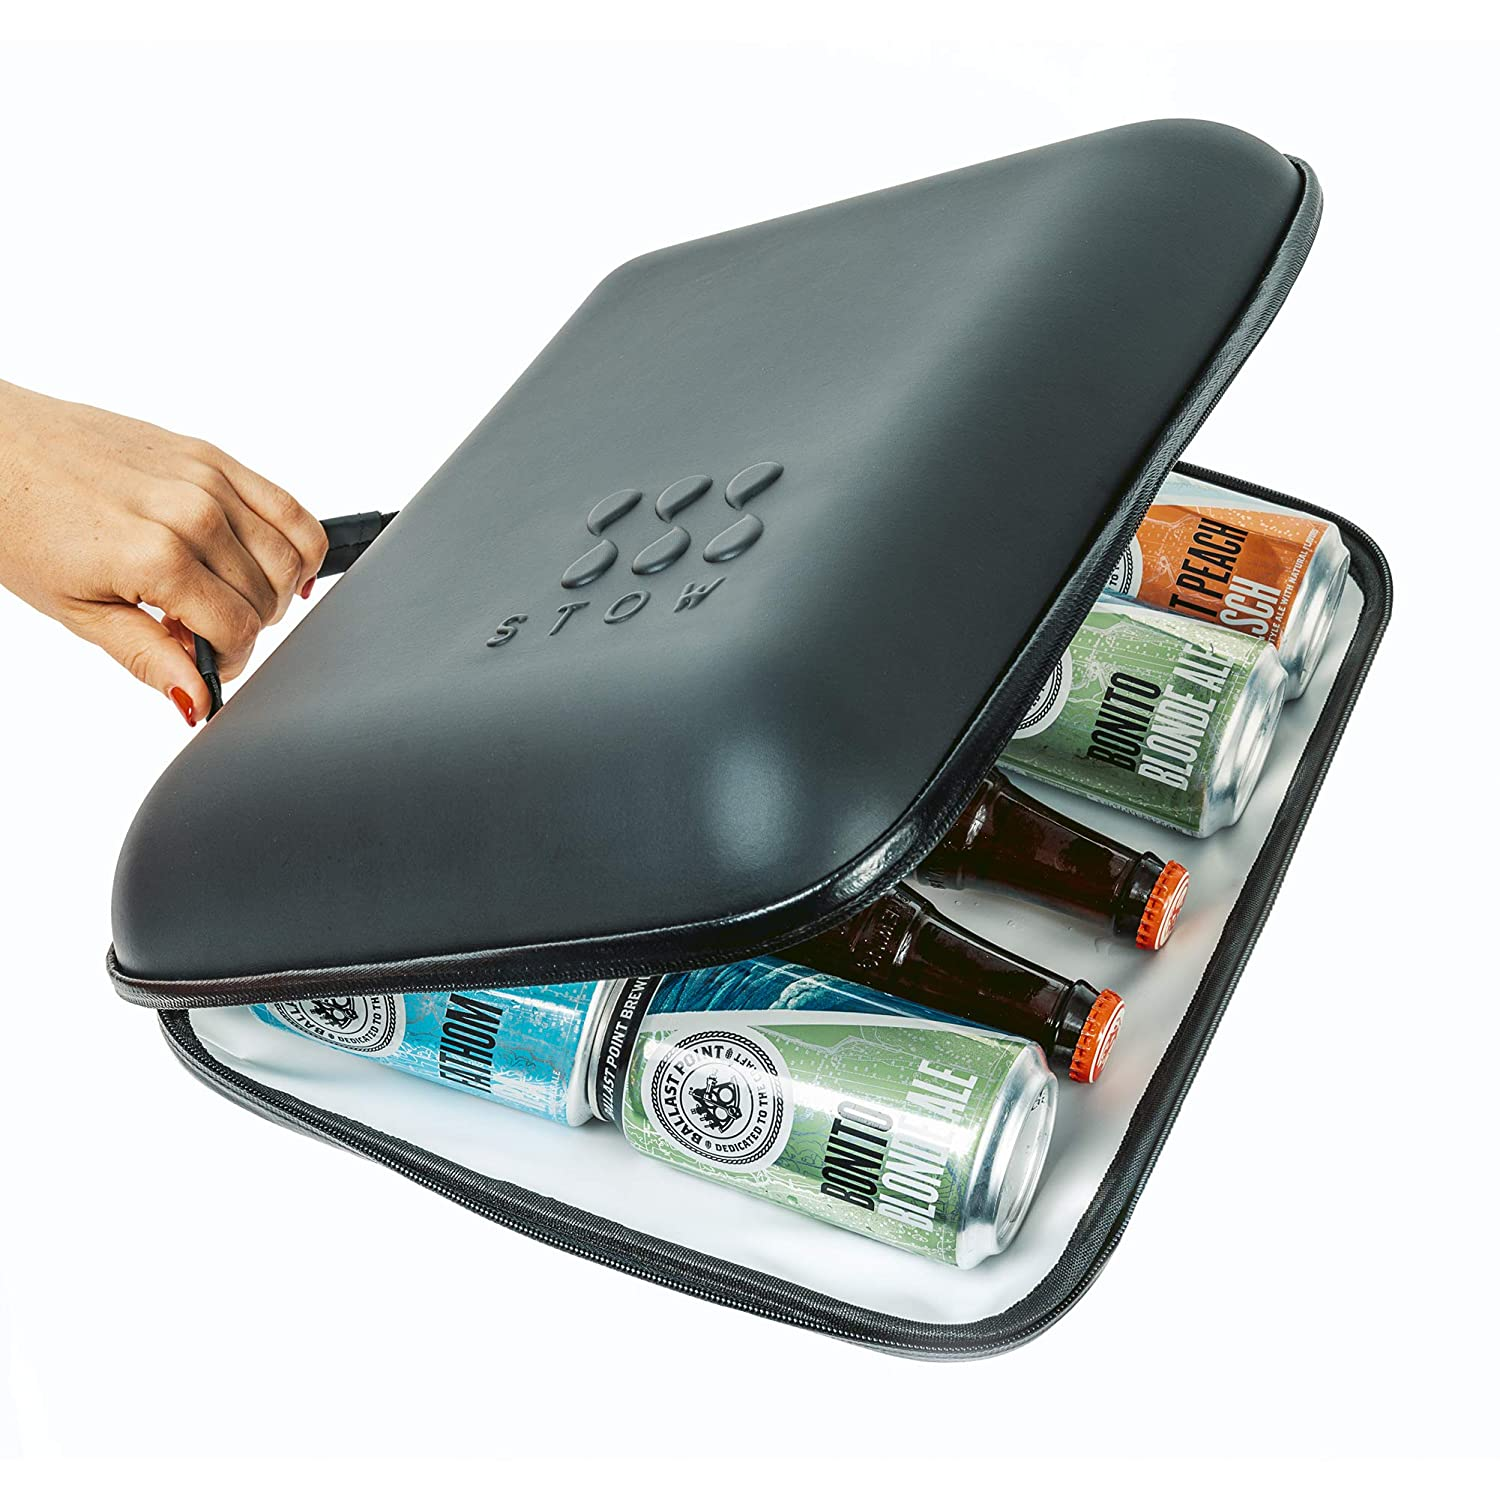 StowCo Small Wine Beer Portable Cooler. 5+ Hours Cold Drinks.